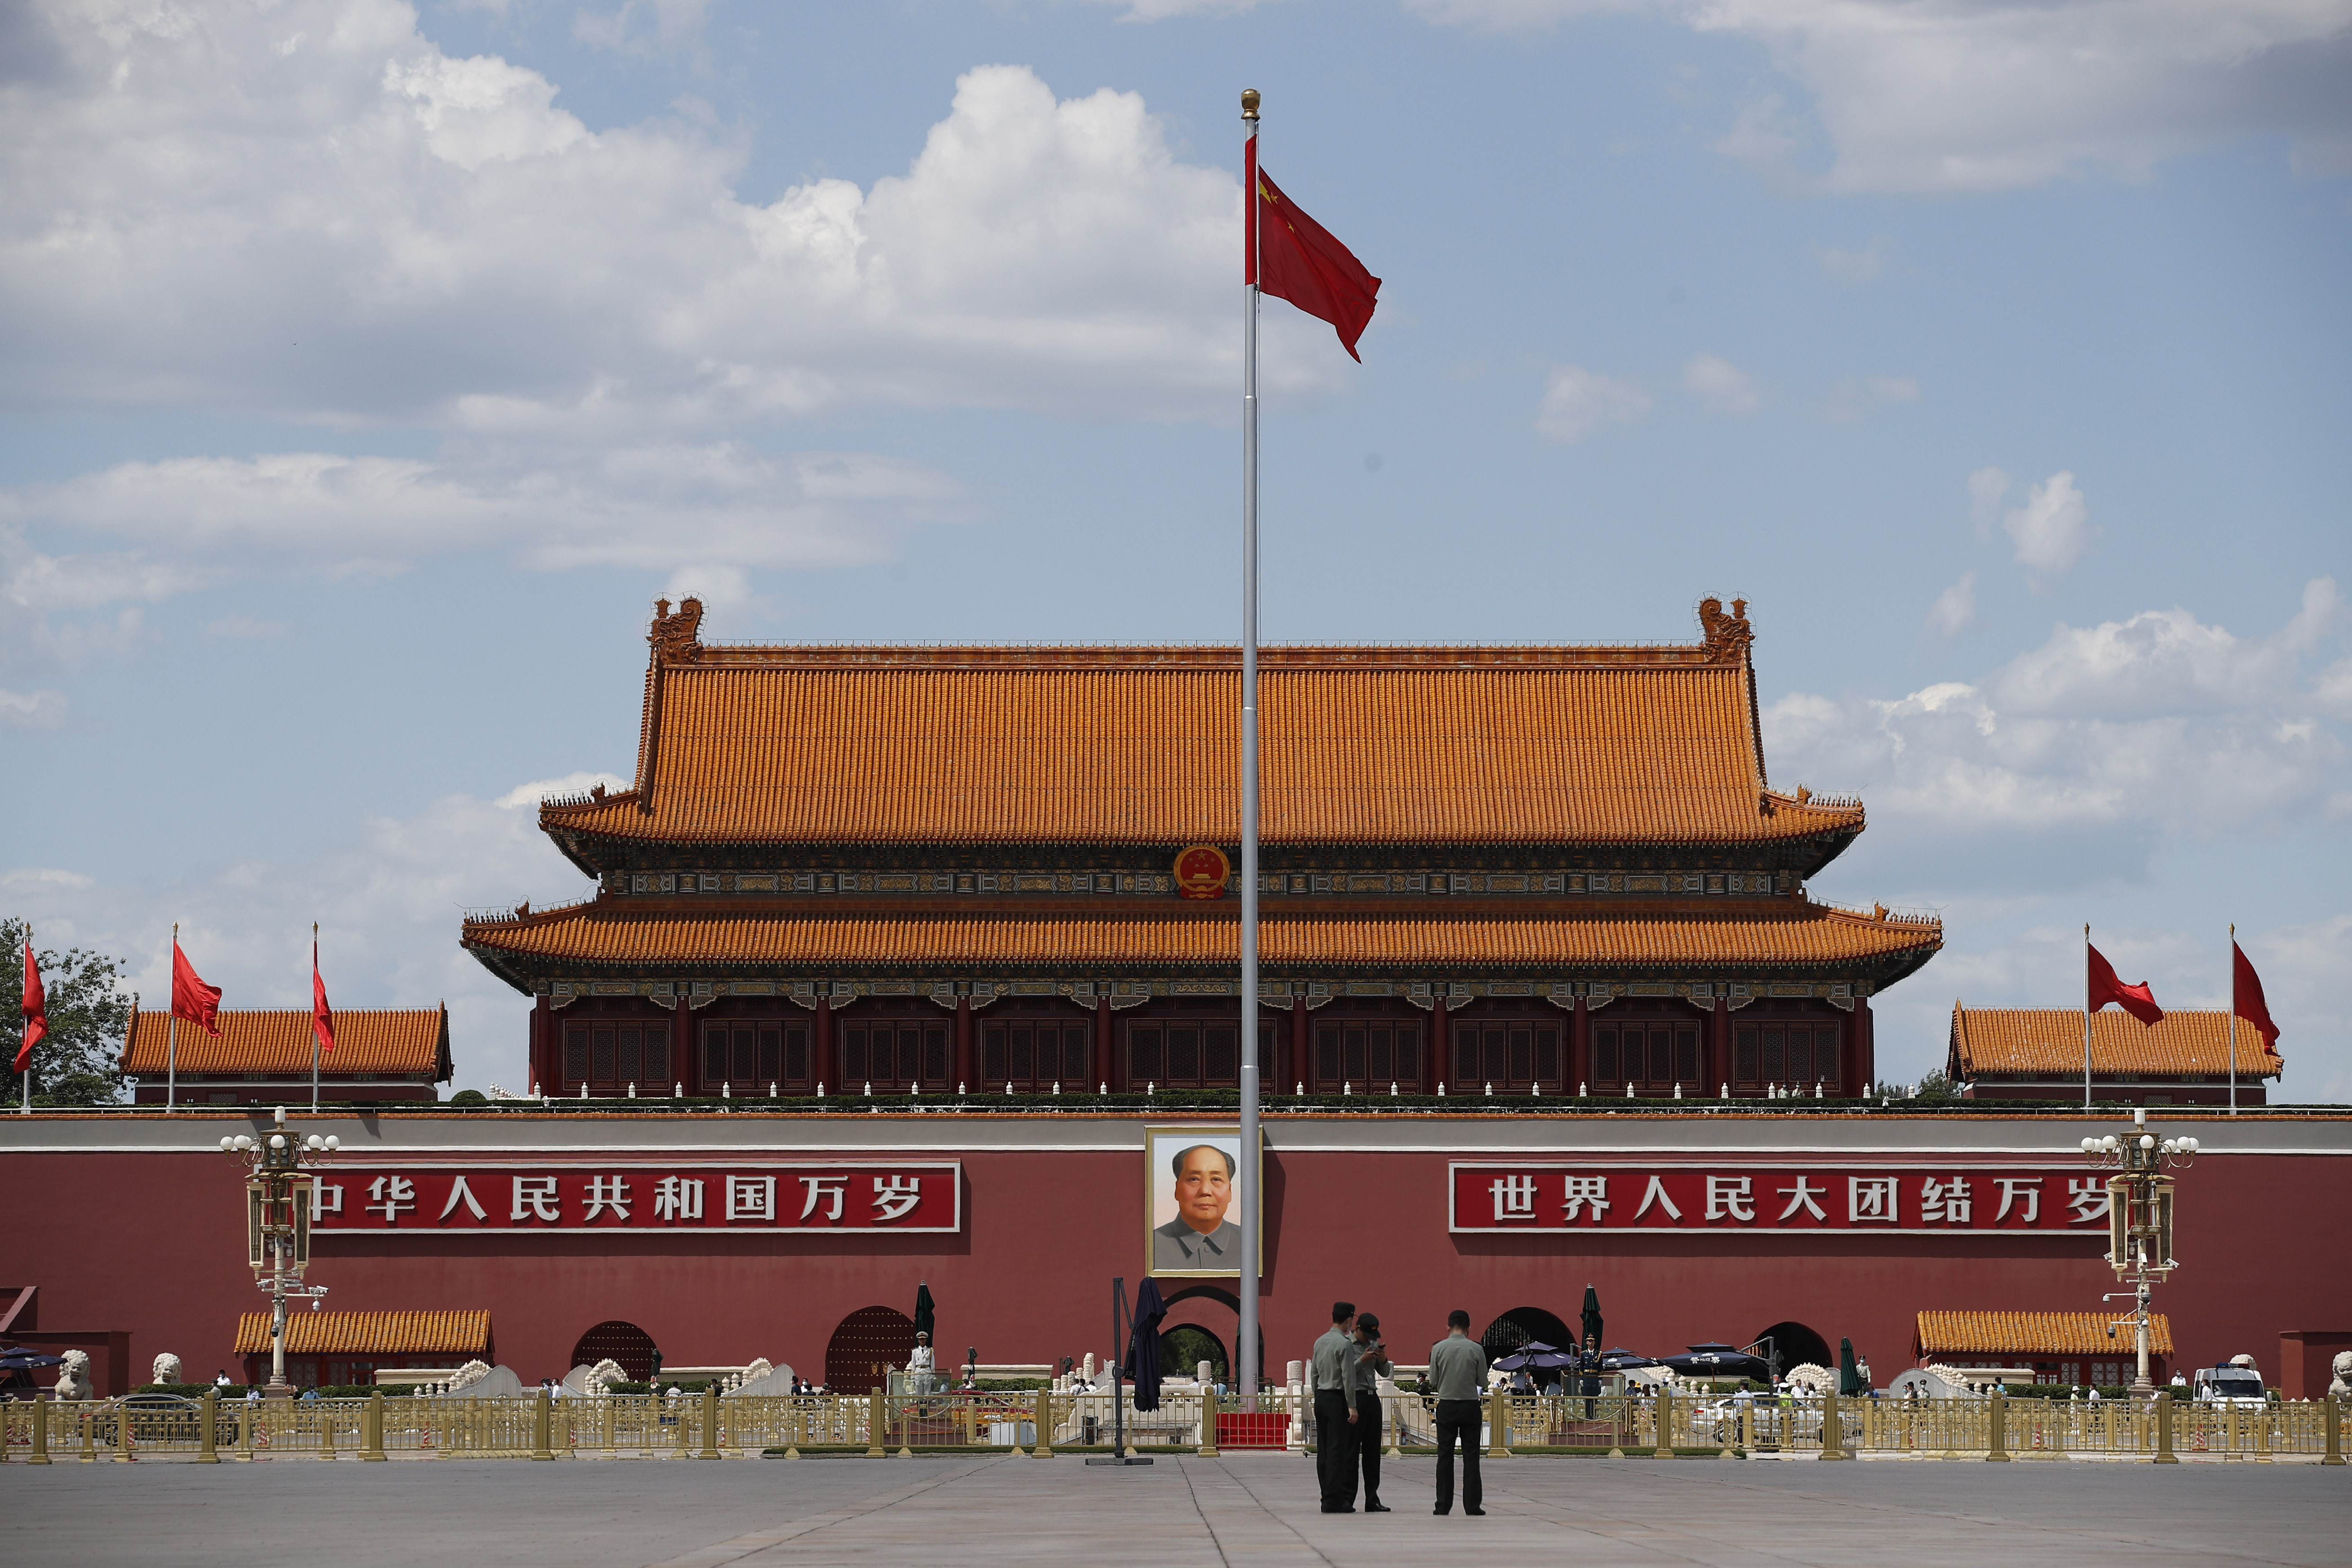 The Chinese national flag is flown on Tiananmen Square